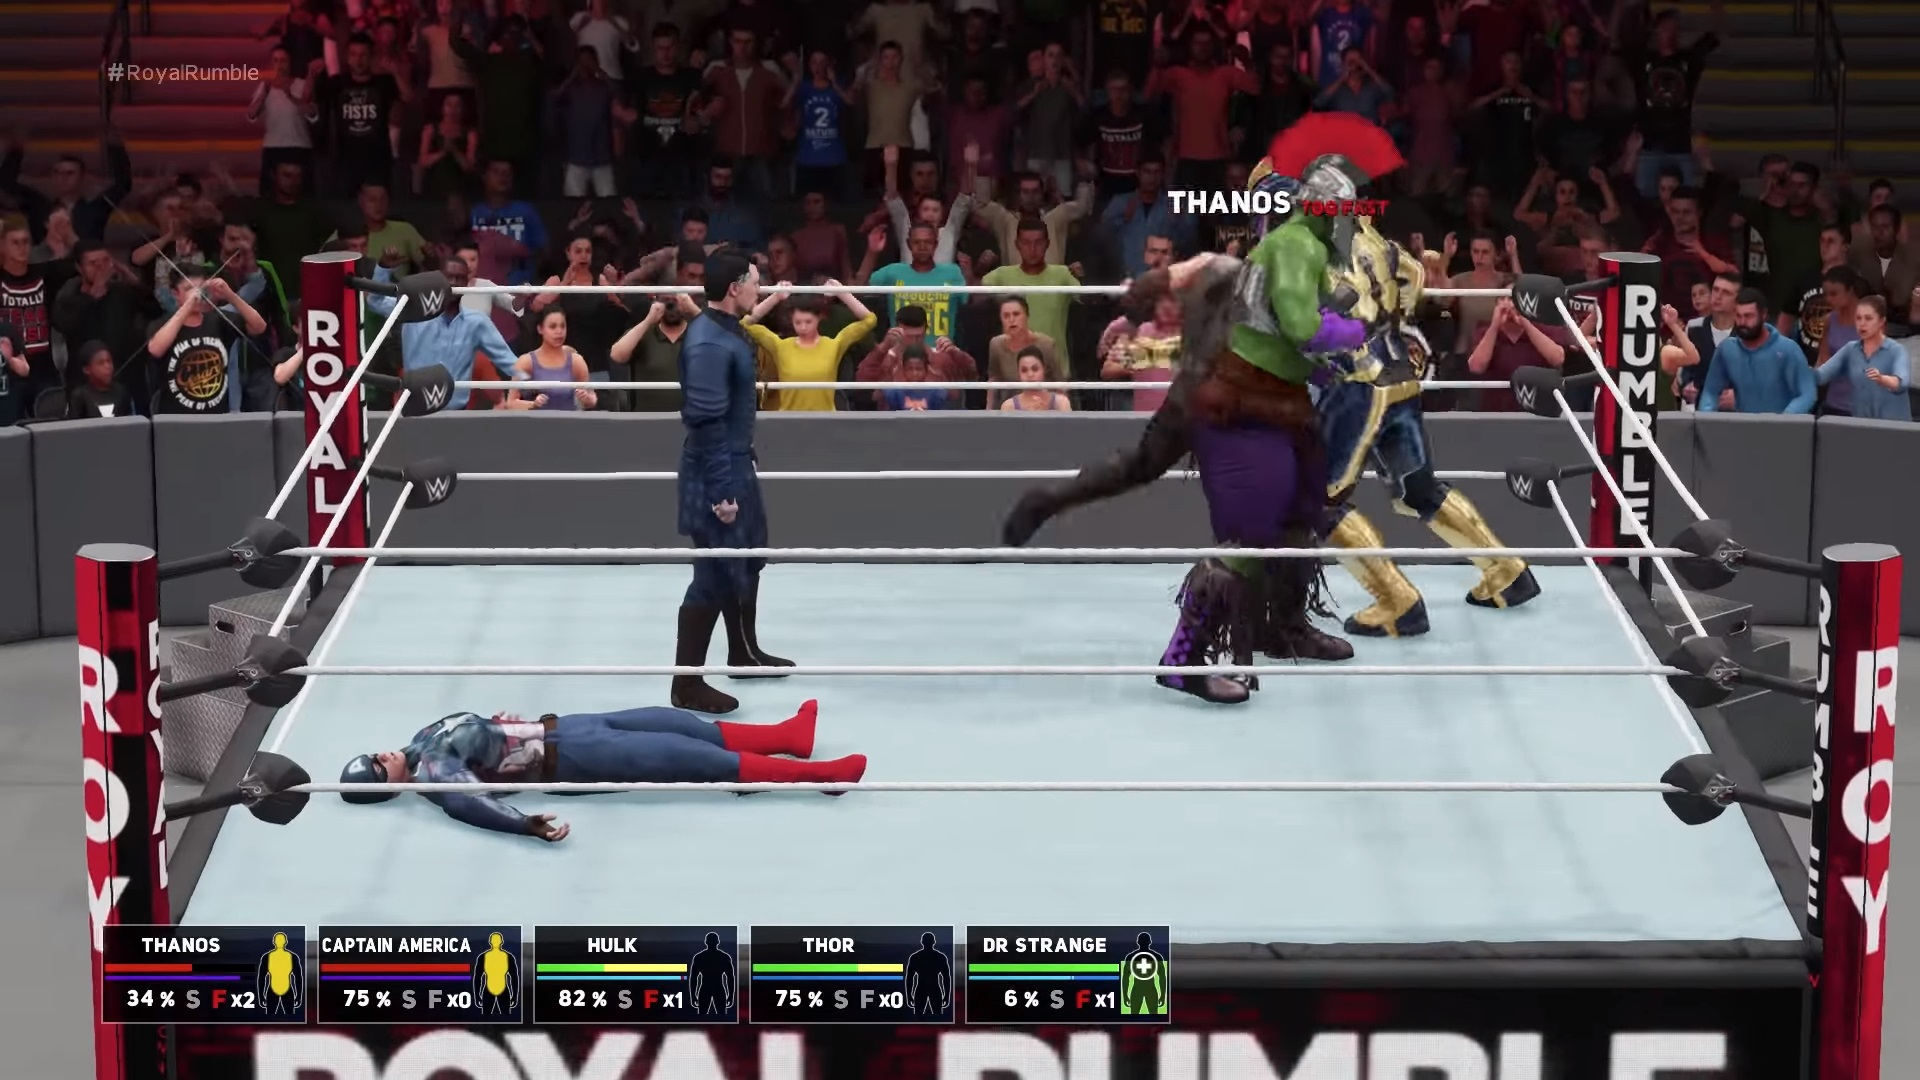 heres-how-the-characters-of-avengers-infinity-war-would-do-in-a-royal-rumble-social.jpg